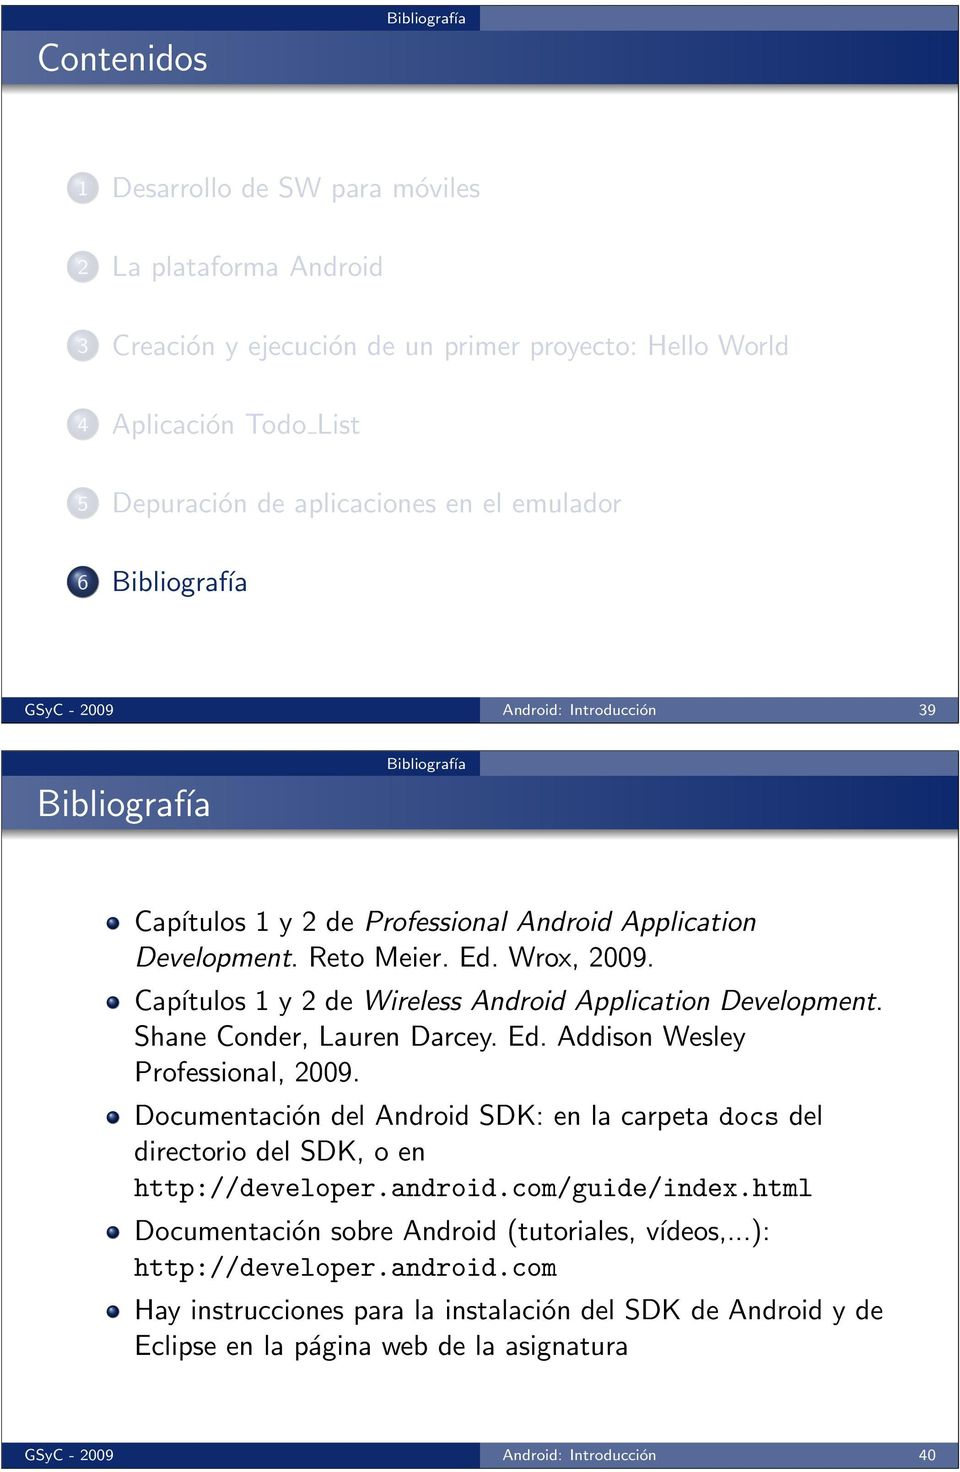 Capítulos 1 y 2 de Wireless Android Application Development. Shane Conder, Lauren Darcey. Ed. Addison Wesley Professional, 2009.